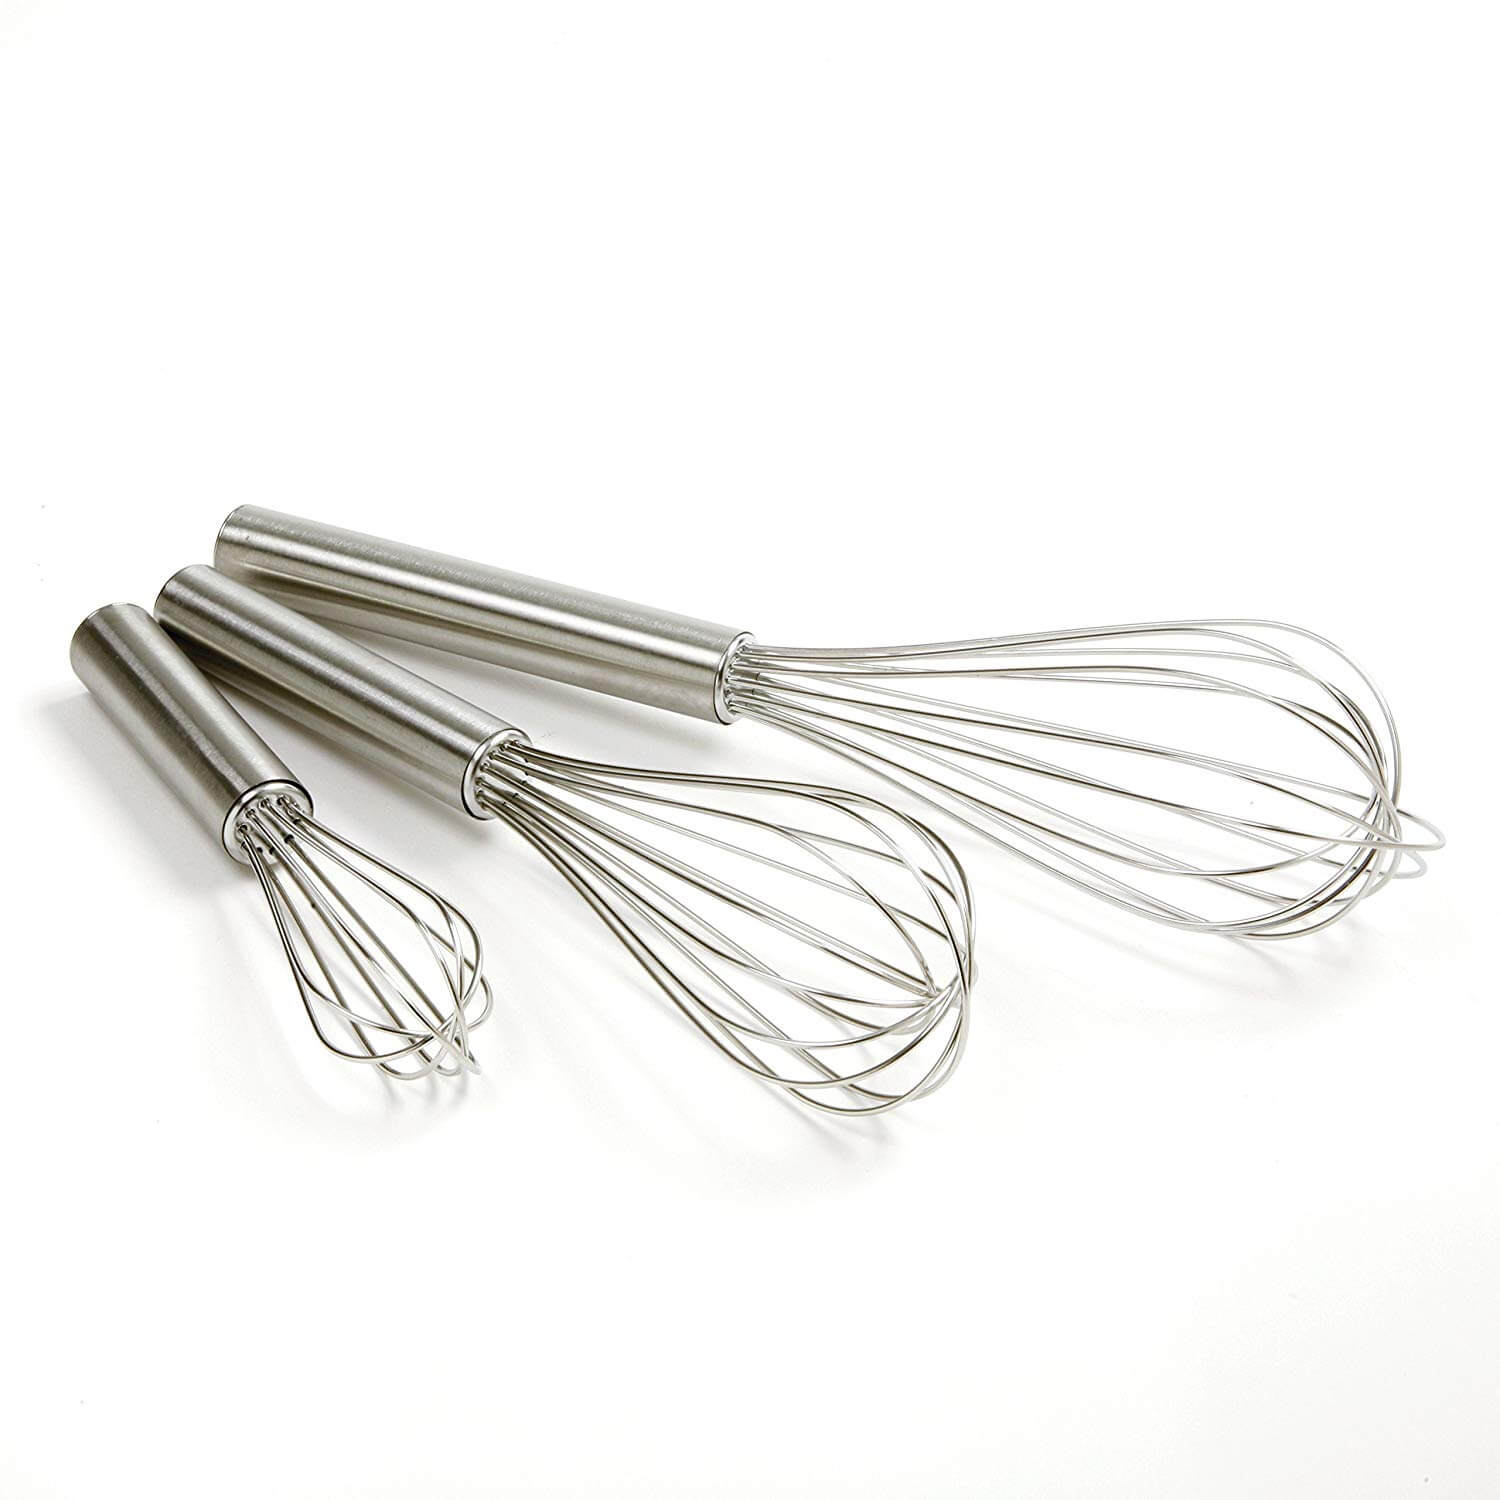 Norpro Balloon Whisk Set